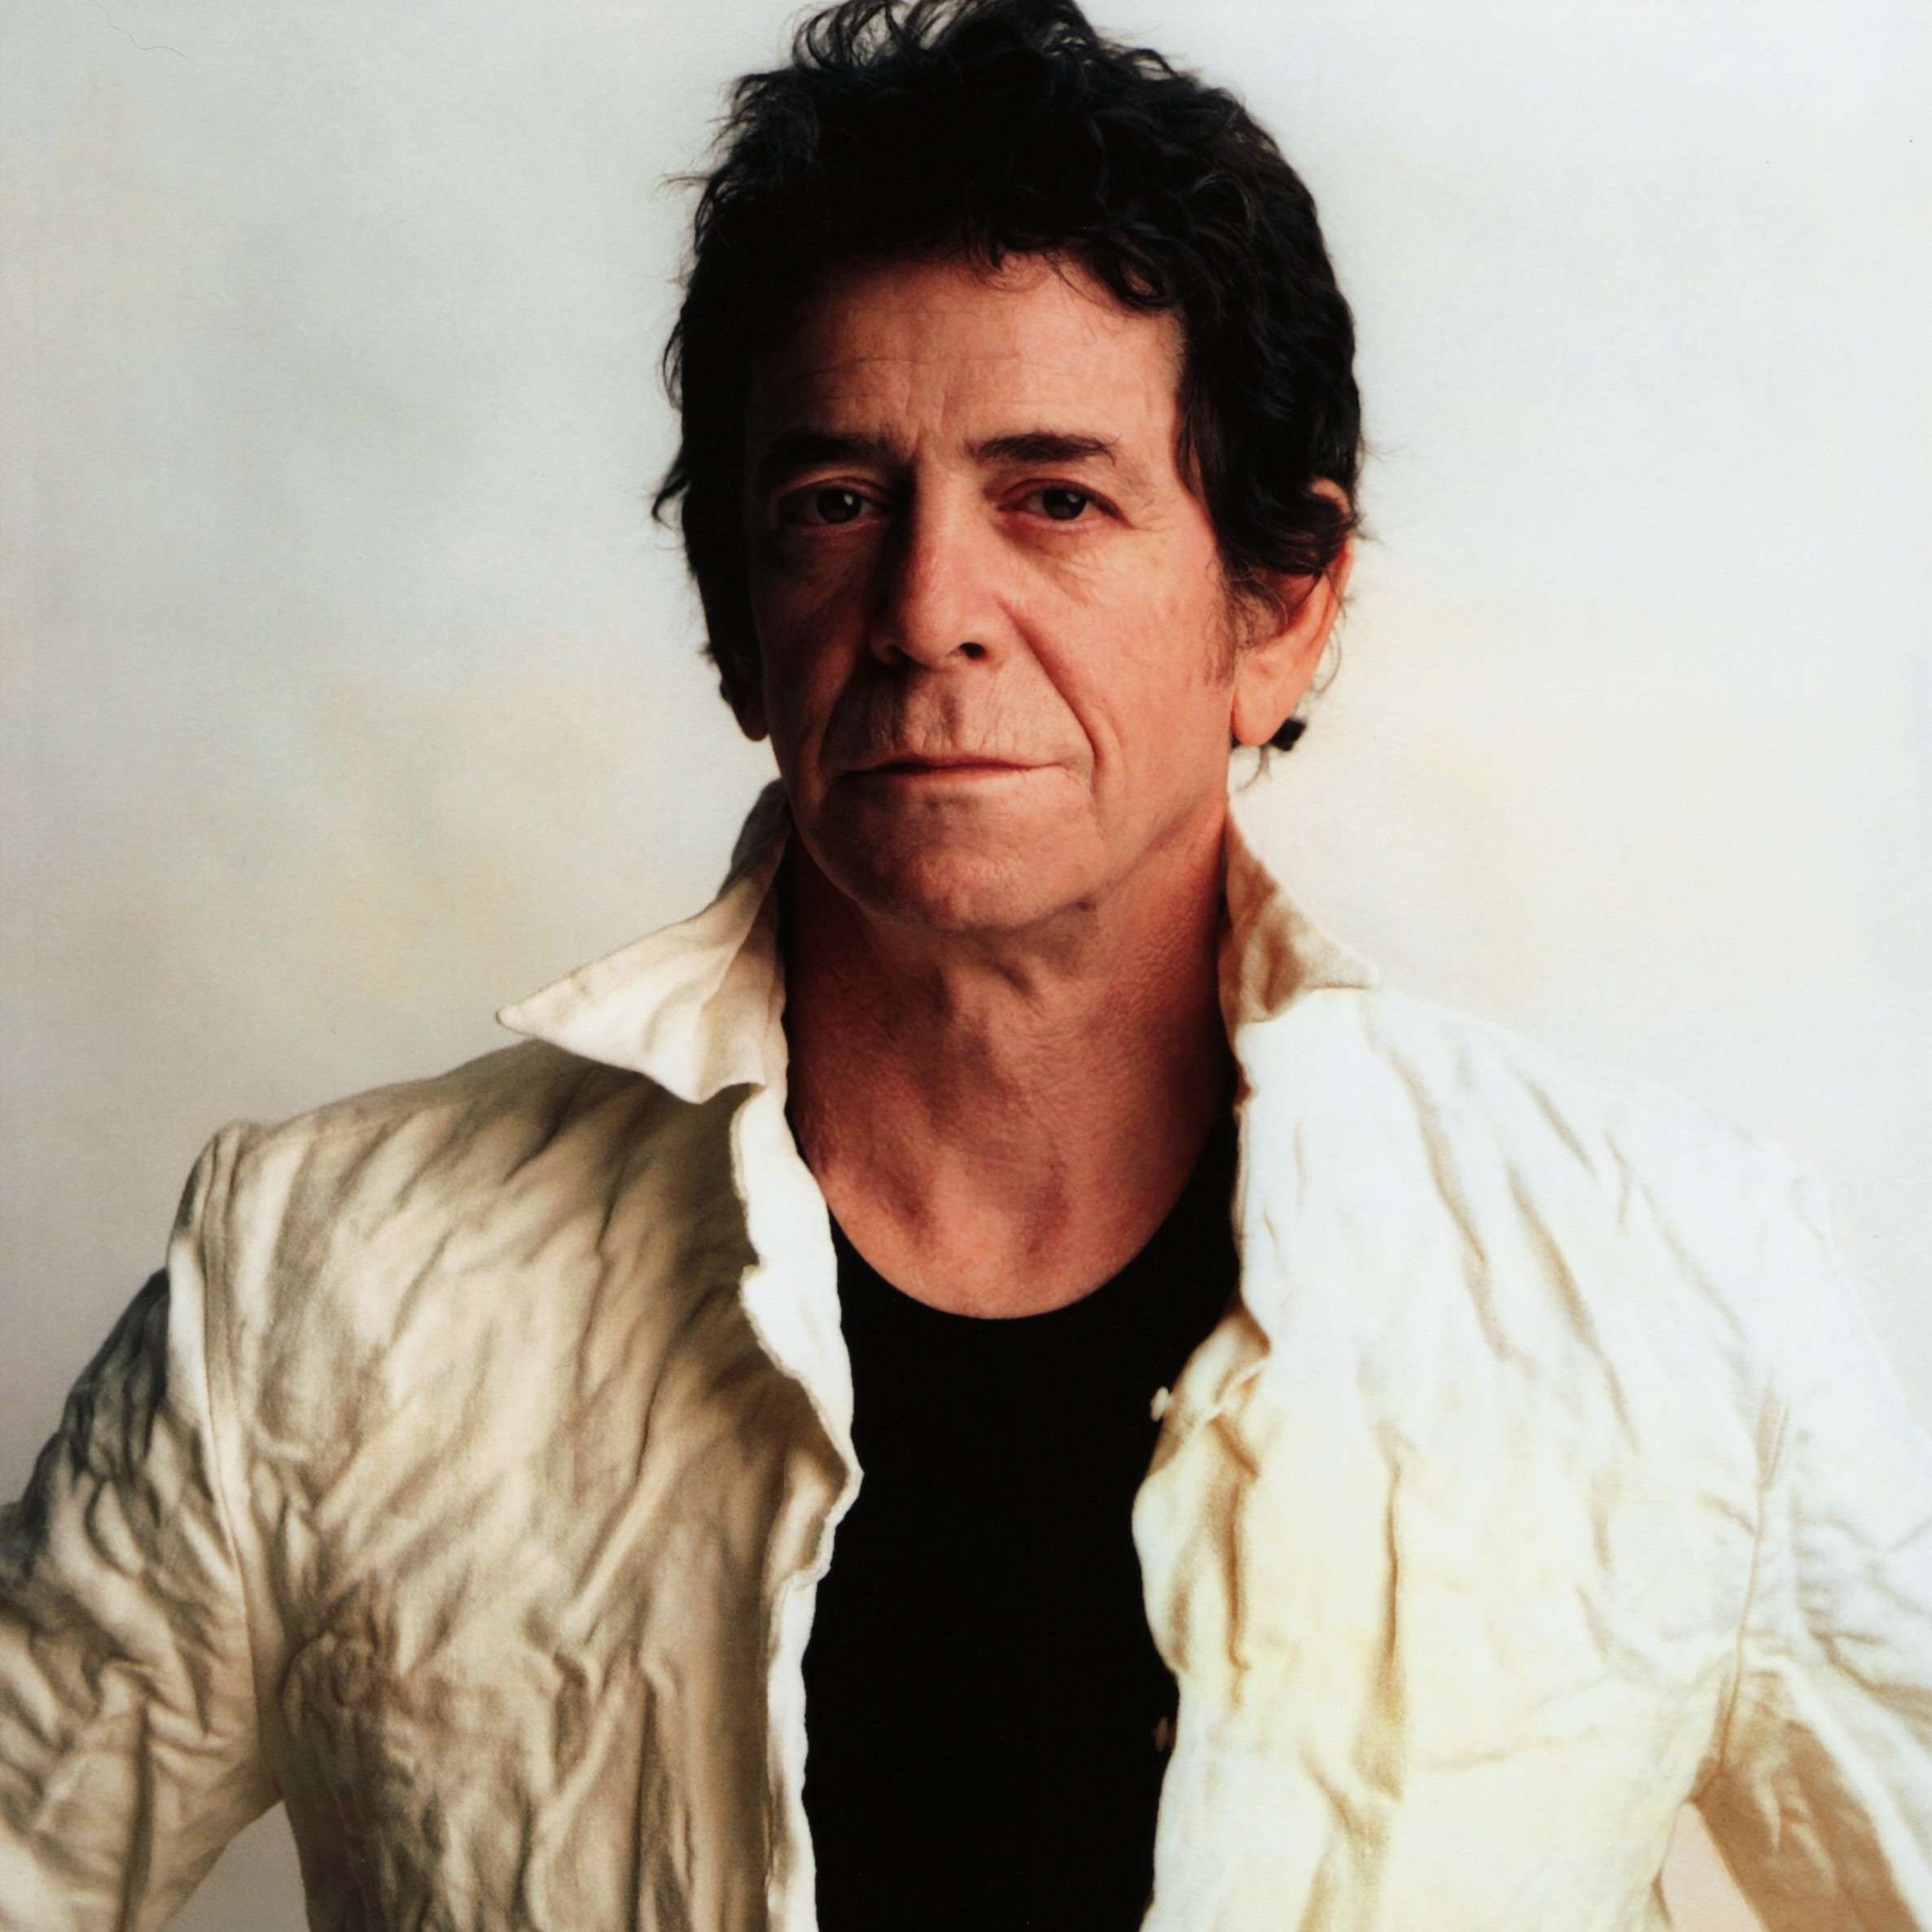 loureed portrait hr e1305207925495 Lou Reed tributes pour in: Pearl Jam, Neil Young, David Bowie honor late musician